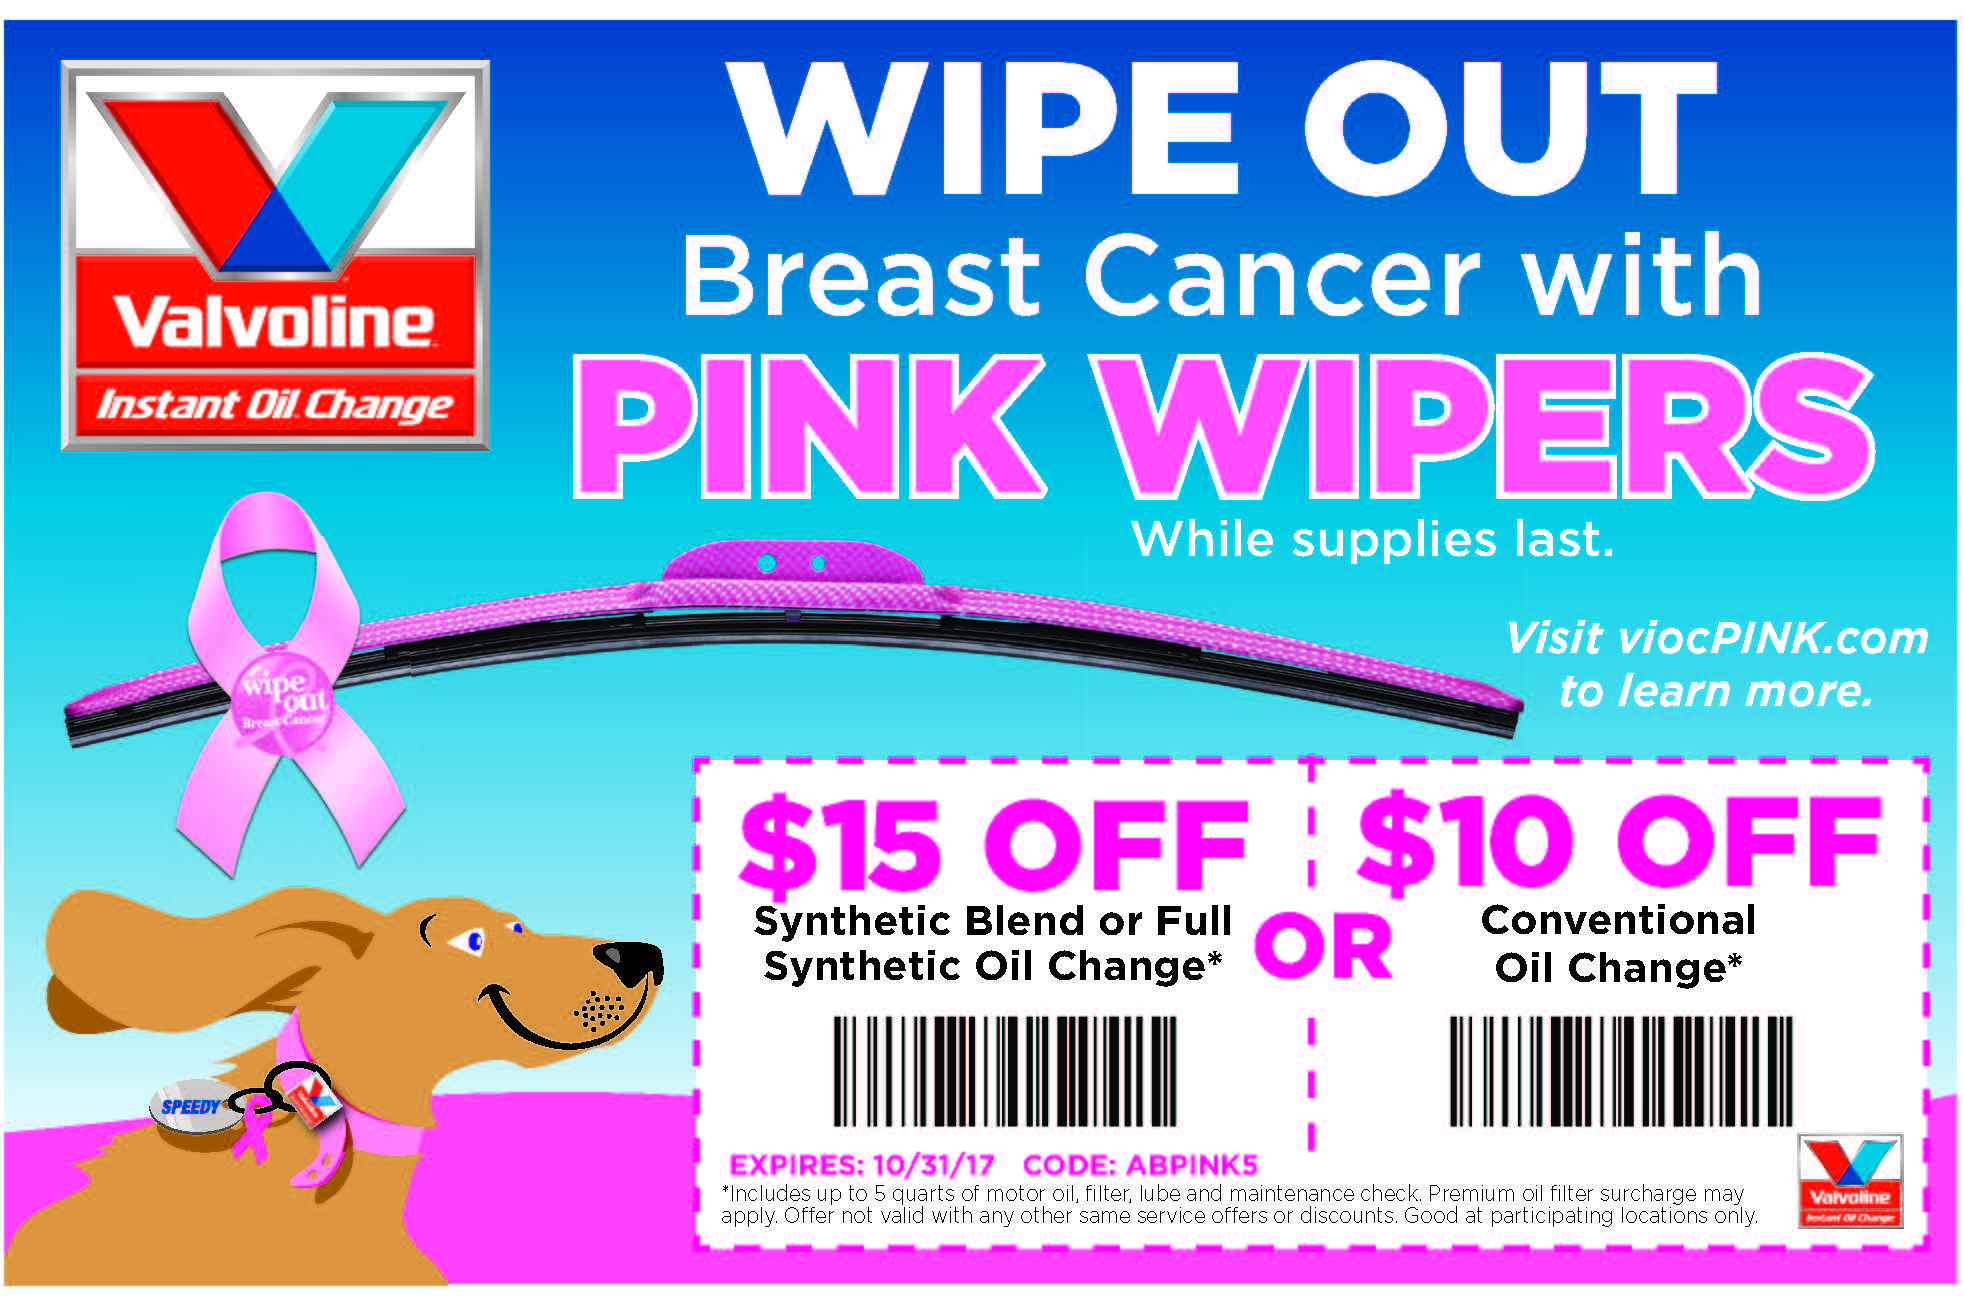 Let's help end breast cancer. This October Visit Valvoline Instant Oil Change and Get Your Pink Wipers to Help #WipeOutBreastCancer